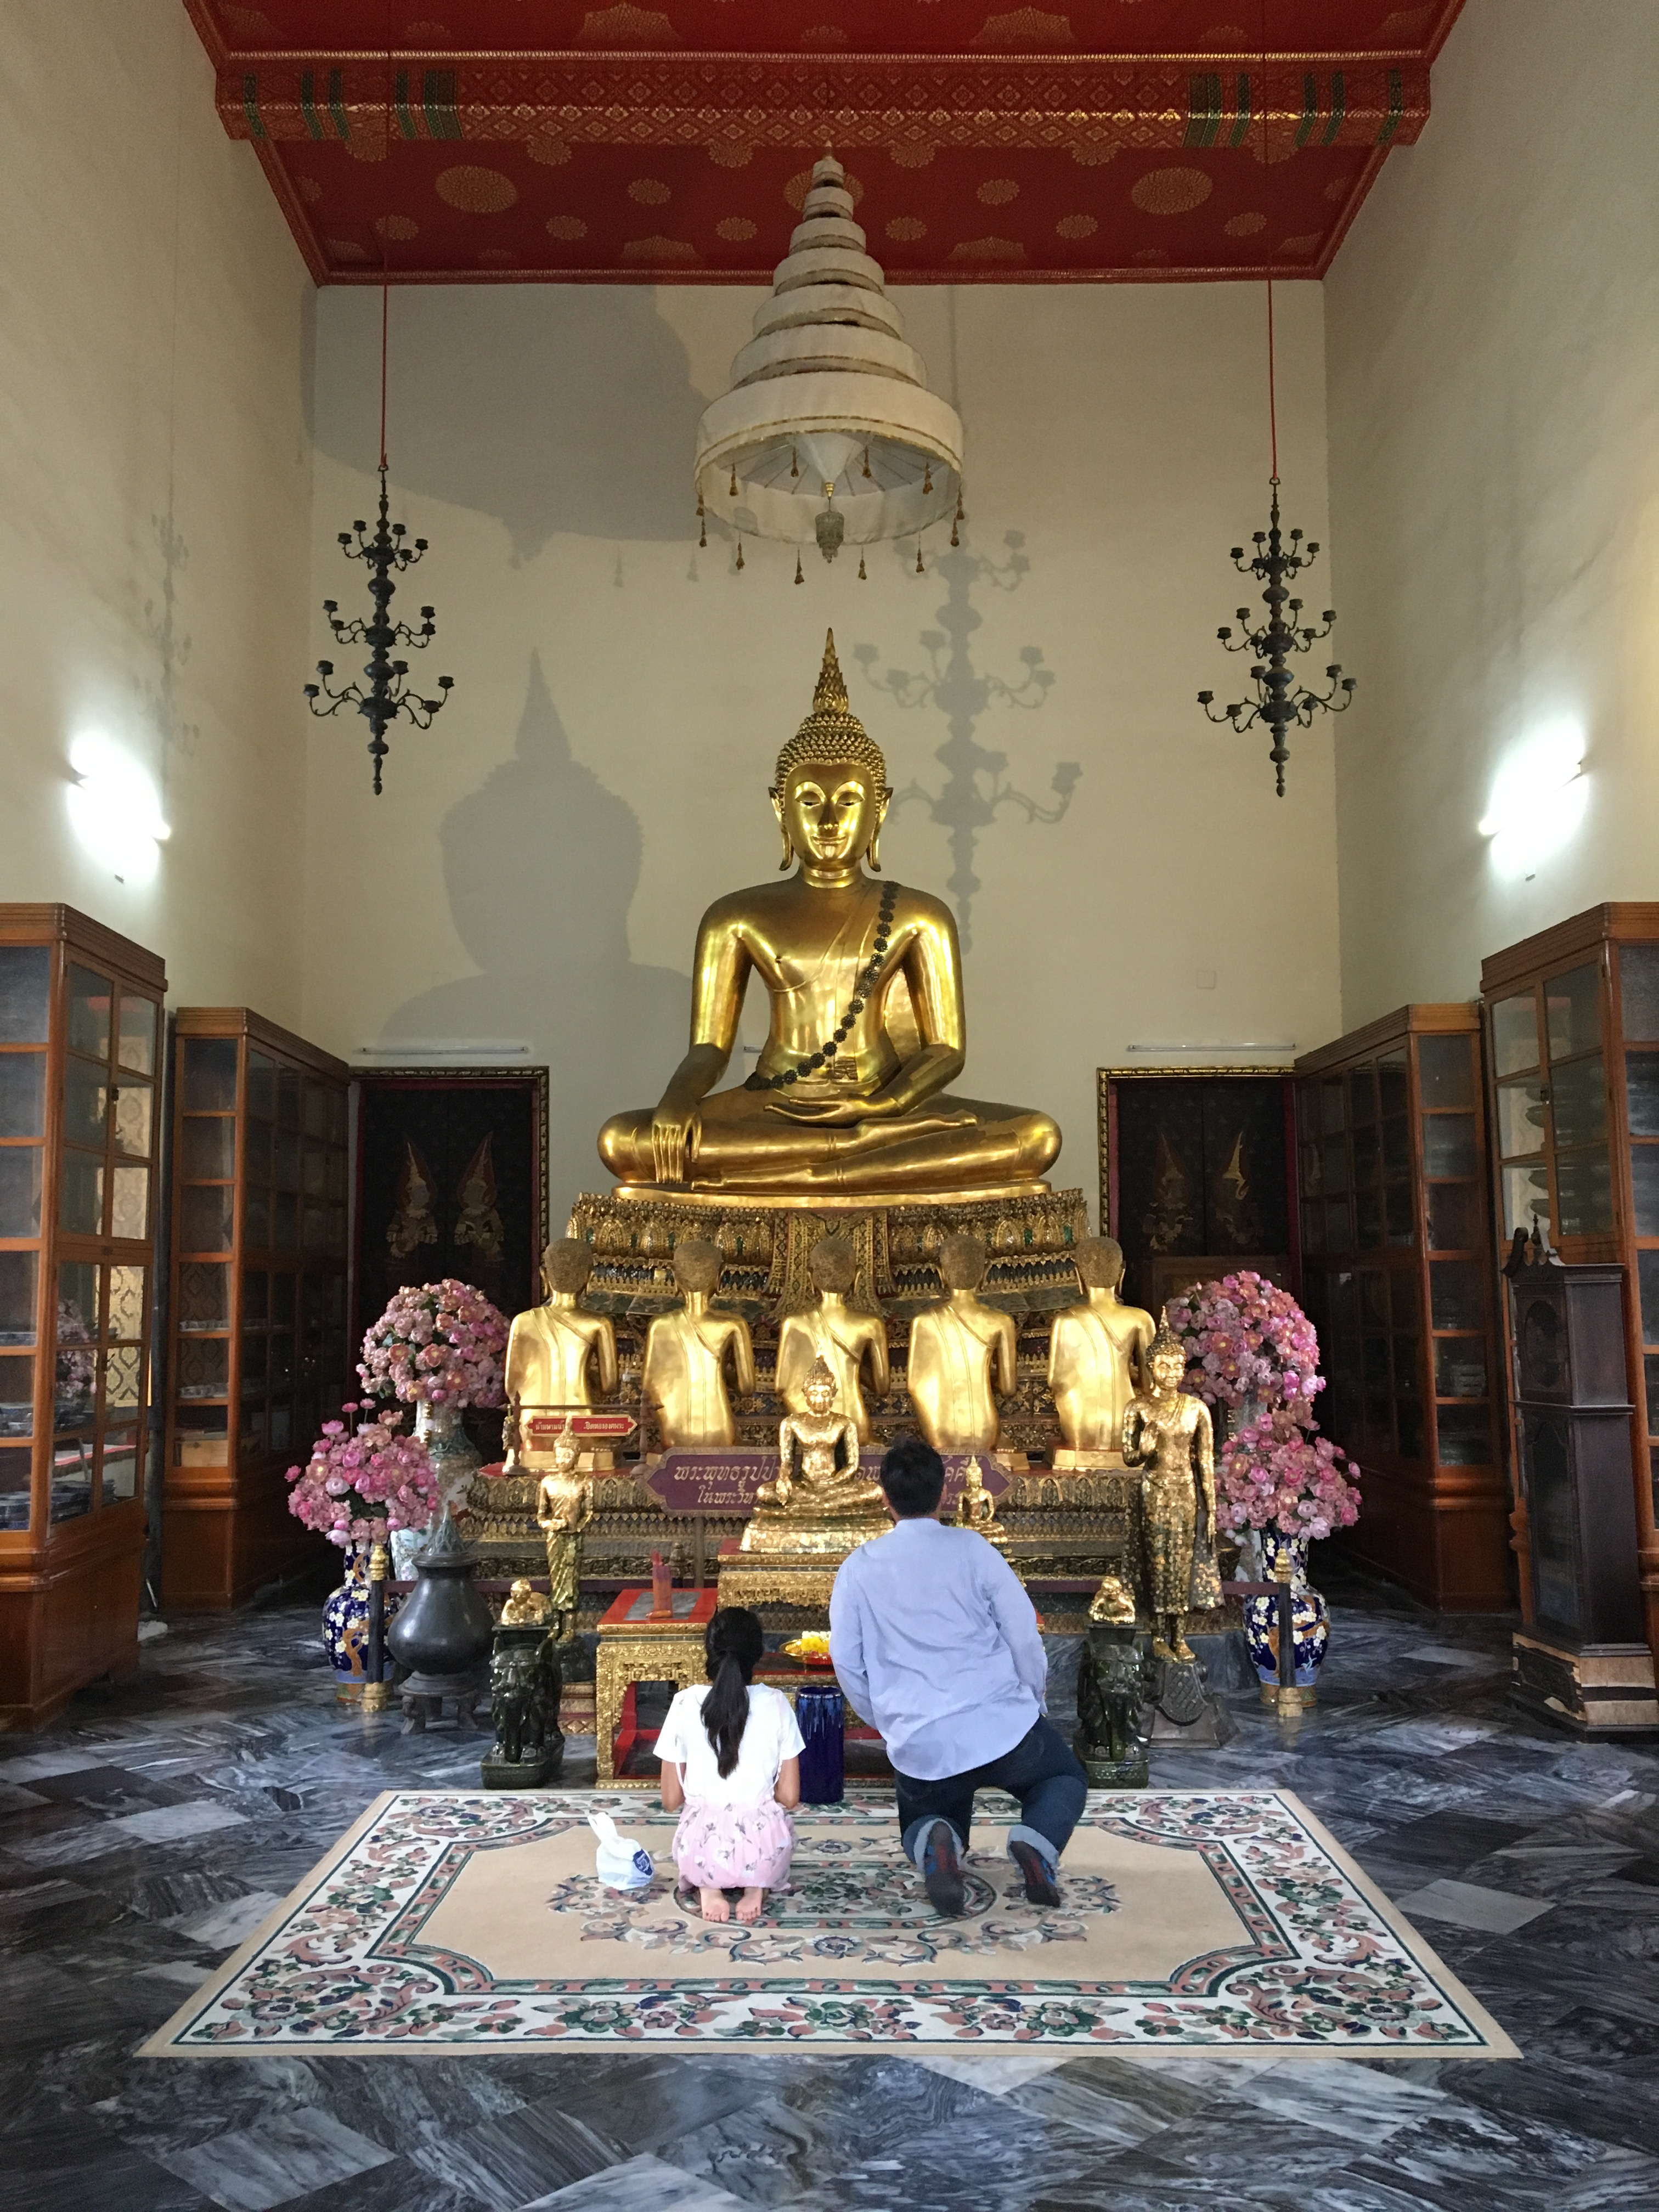 Praying to Buddha